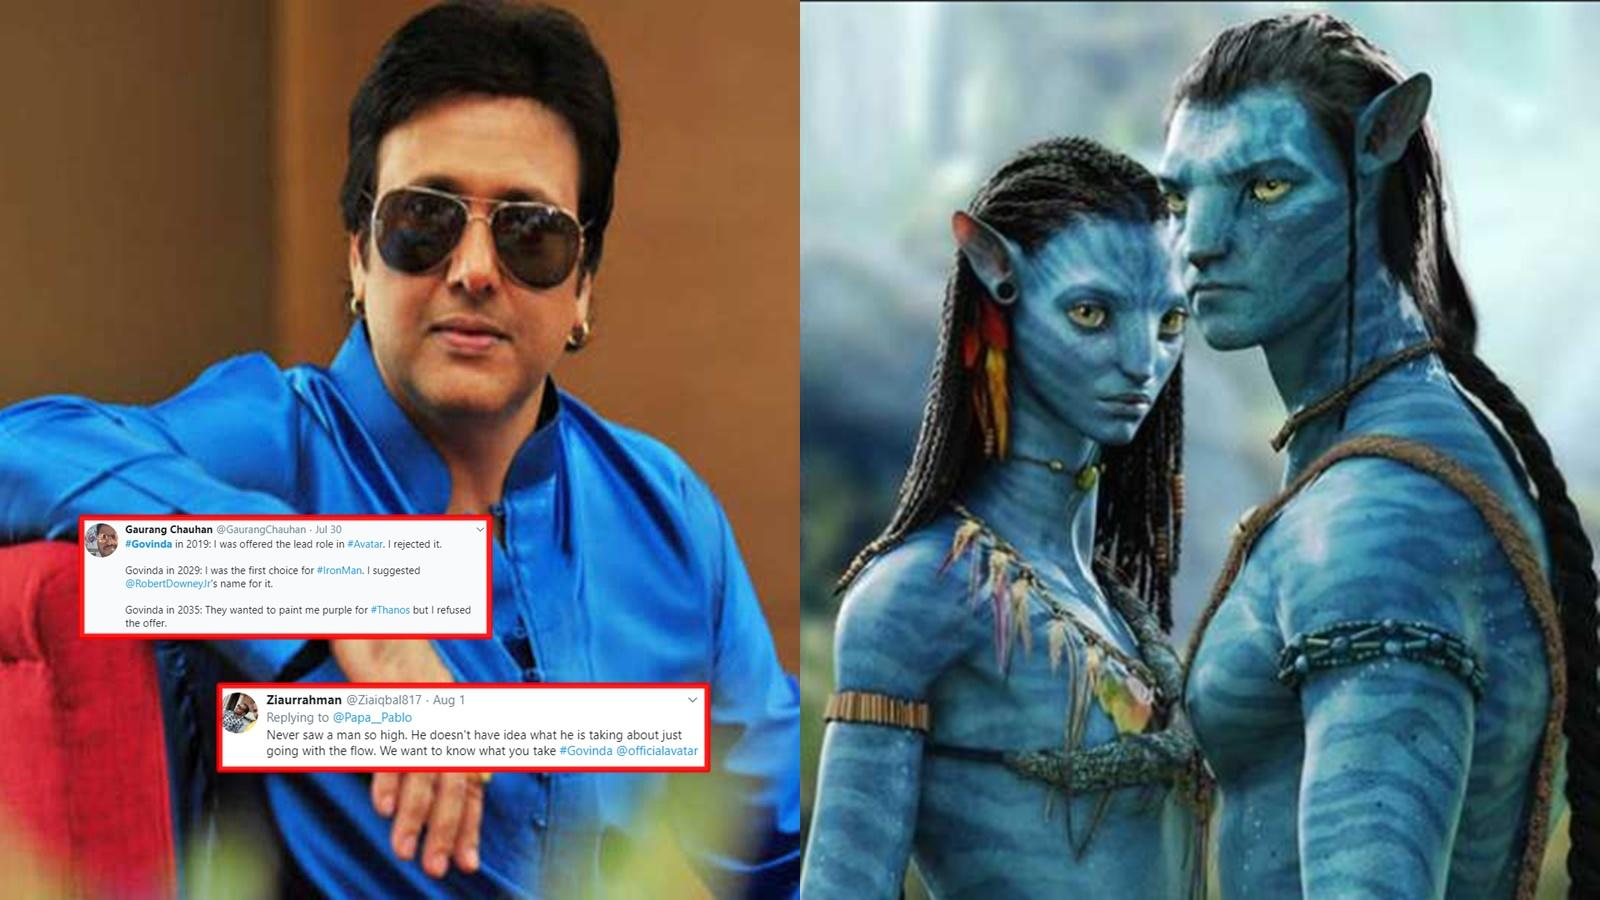 Govinda Finally Reacts To Trolls Who Refused To Believe His Avatar Claims Slams Them For Prejudiced Behaviour Hindi Movie News Bollywood Times Of India